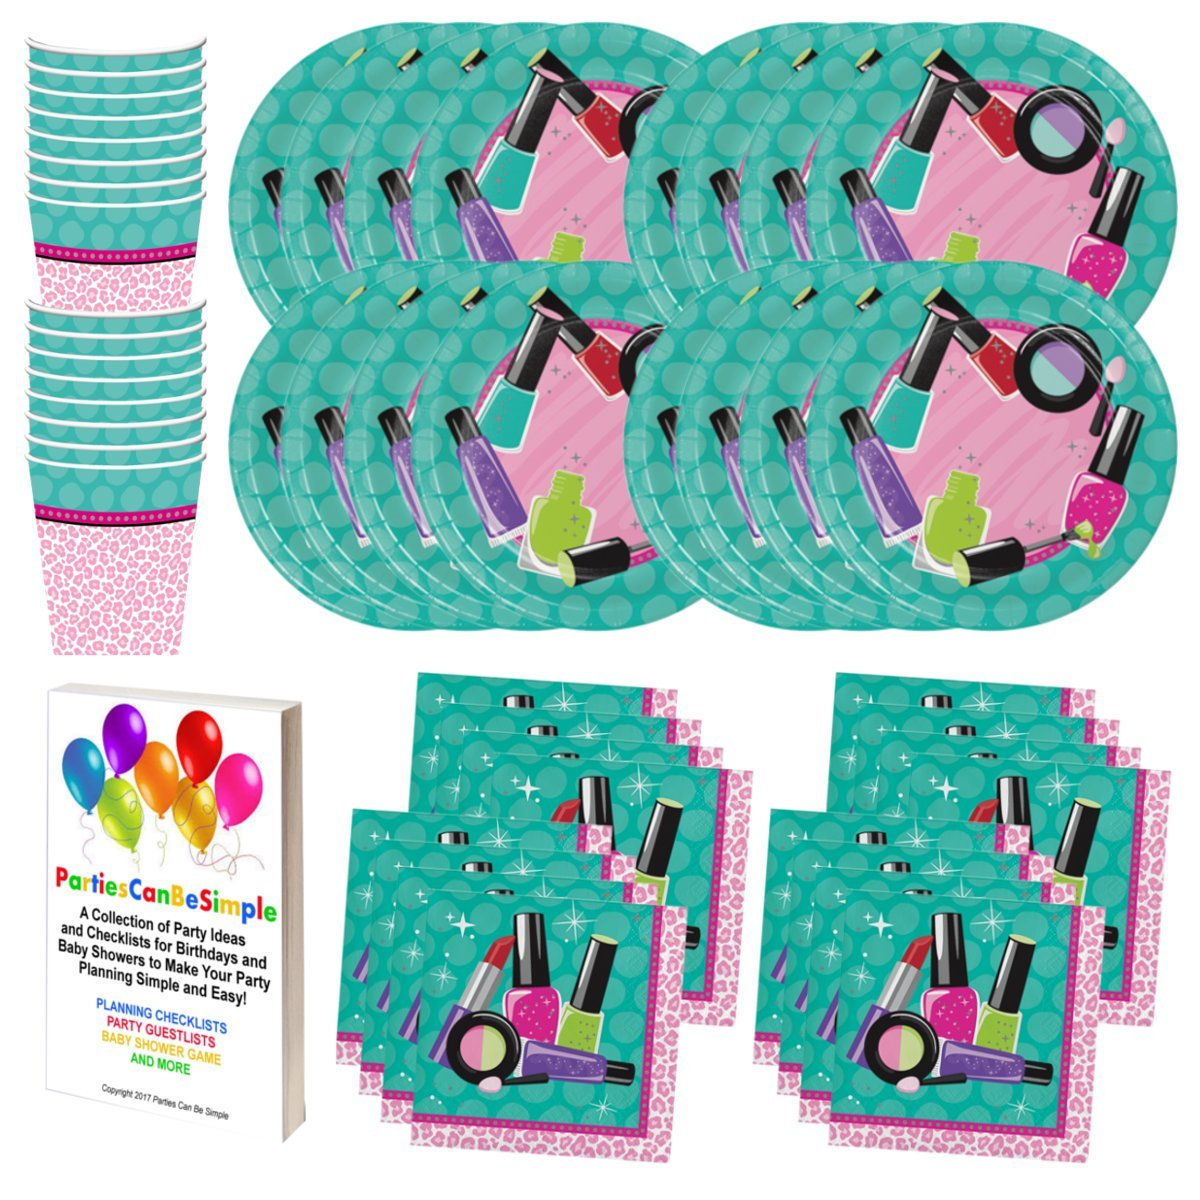 Makeup Spa Salon Birthday Party Supplies Set Plates Cups Napkins Tableware Kit for 16 Guests by PCBS